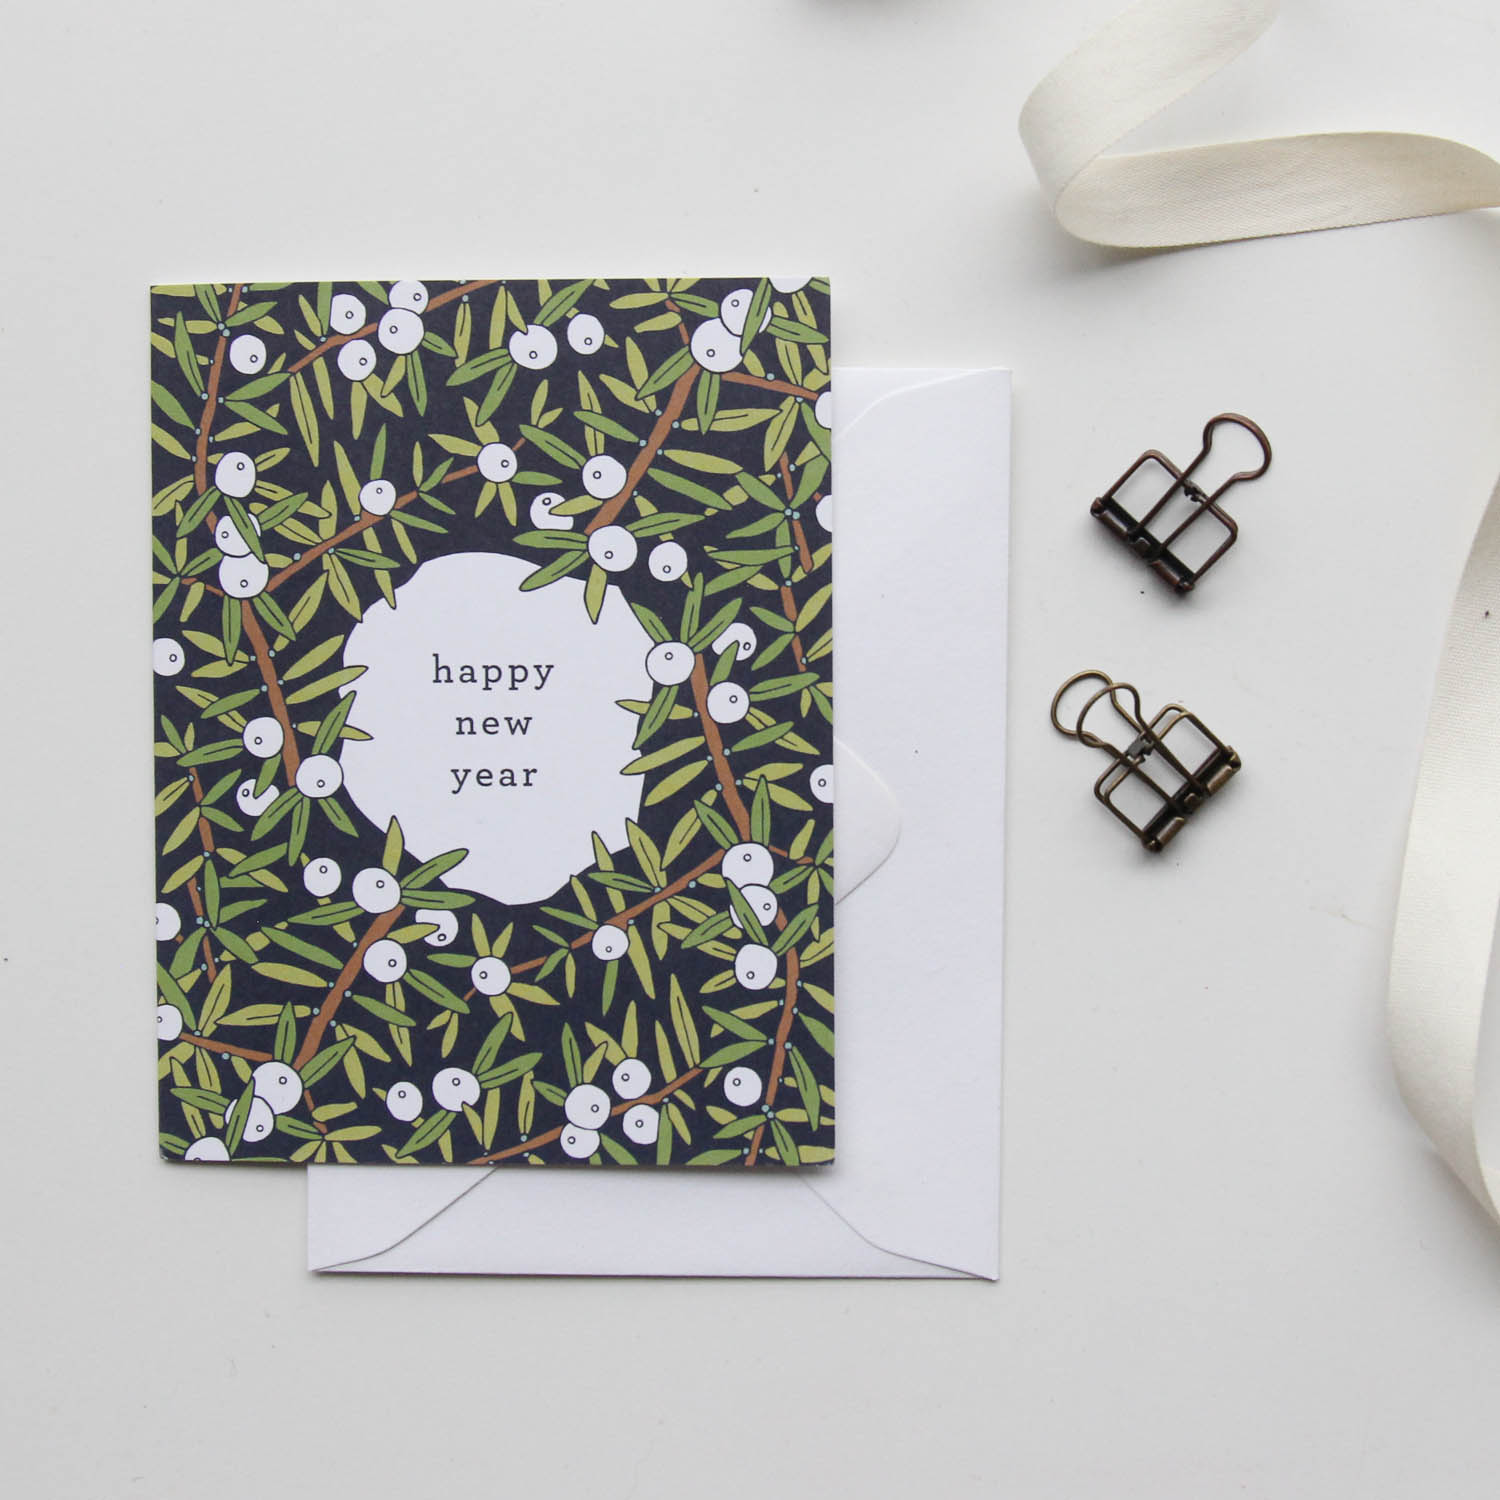 Happy New Year Card - Christmas Cards 2018, Holiday Cards | Illustrated Floral Christmas Cards by Root & Branch Paper Co.